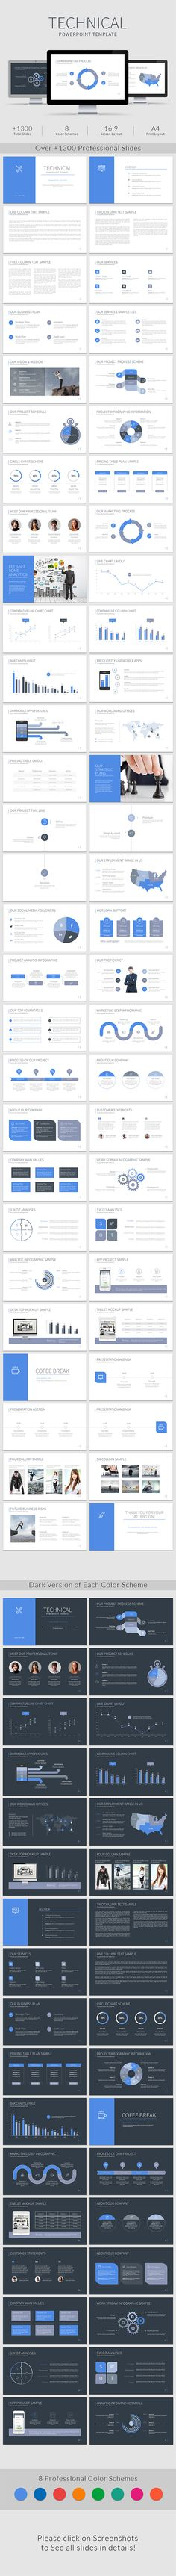 Technical PowerPoint Template by Butterfly_Graphic Professional, modern and up-to-date presentation template. Templates are ideal for general presentation including social media, c Creative Powerpoint Presentations, Business Powerpoint Presentation, Business Powerpoint Templates, Keynote Template, Company Profile Template, Web Design, Graphic Design, Presentation Design, Presentation Slides